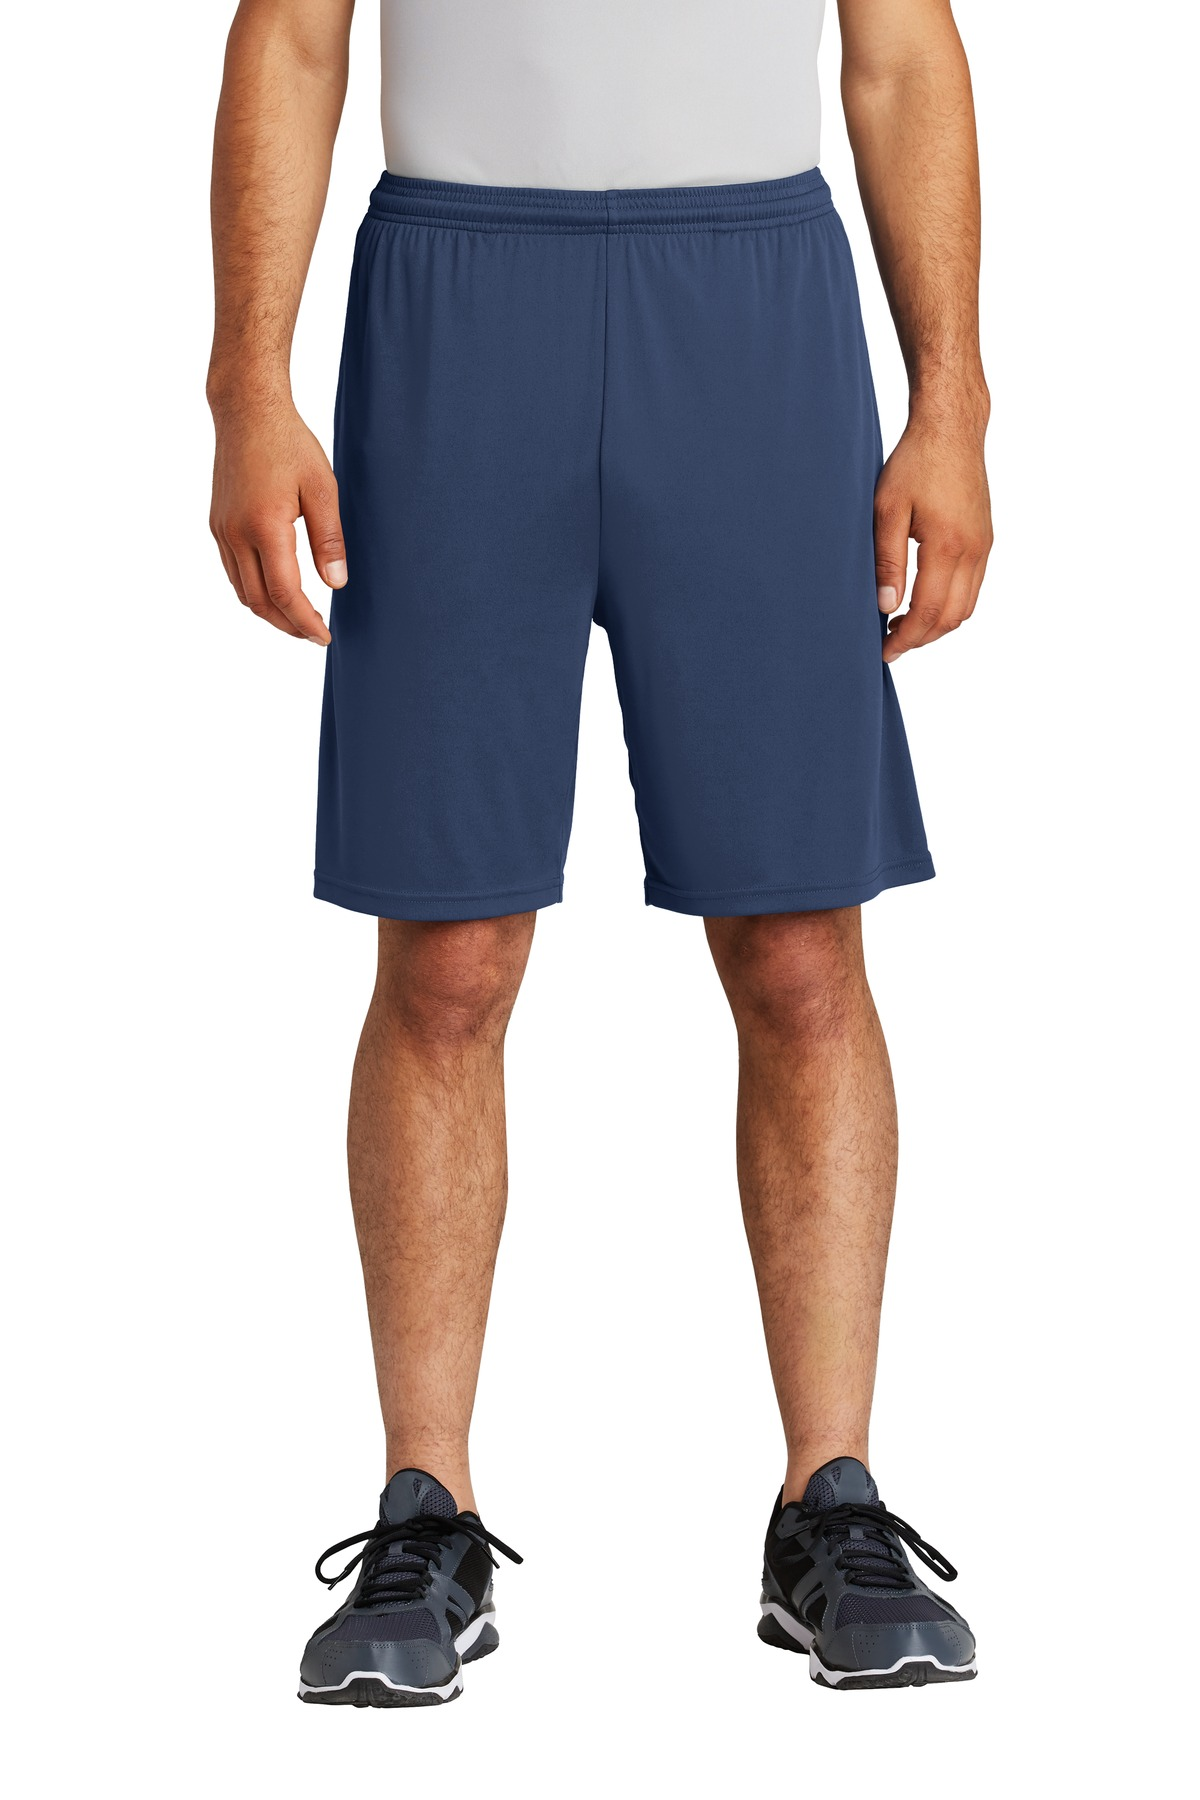 Sport-Tek  ®  PosiCharge  ®  Competitor  ™  Pocketed Short. ST355P - True Navy